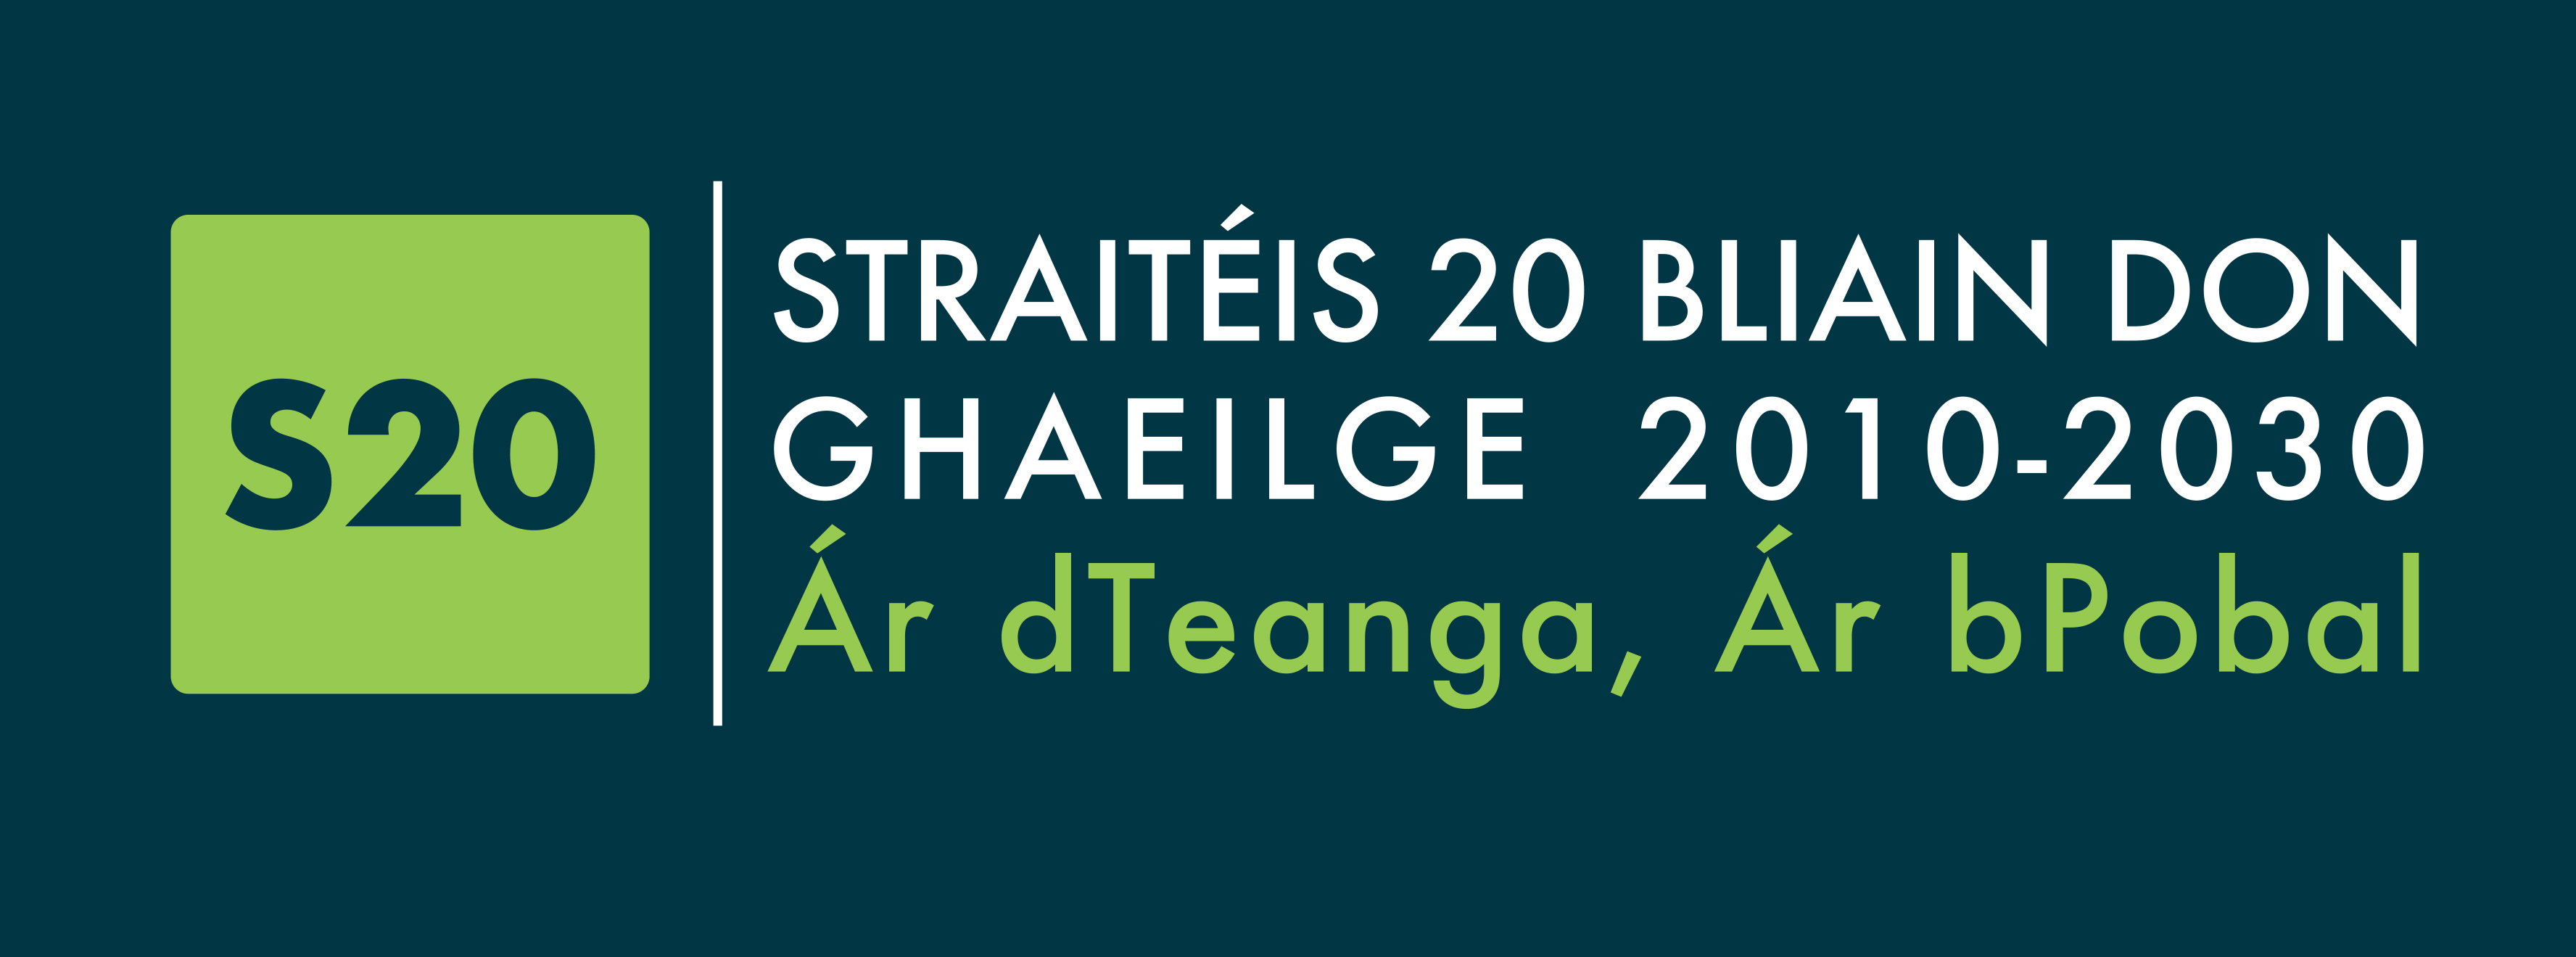 Logo of the 20 years strategy of Irish